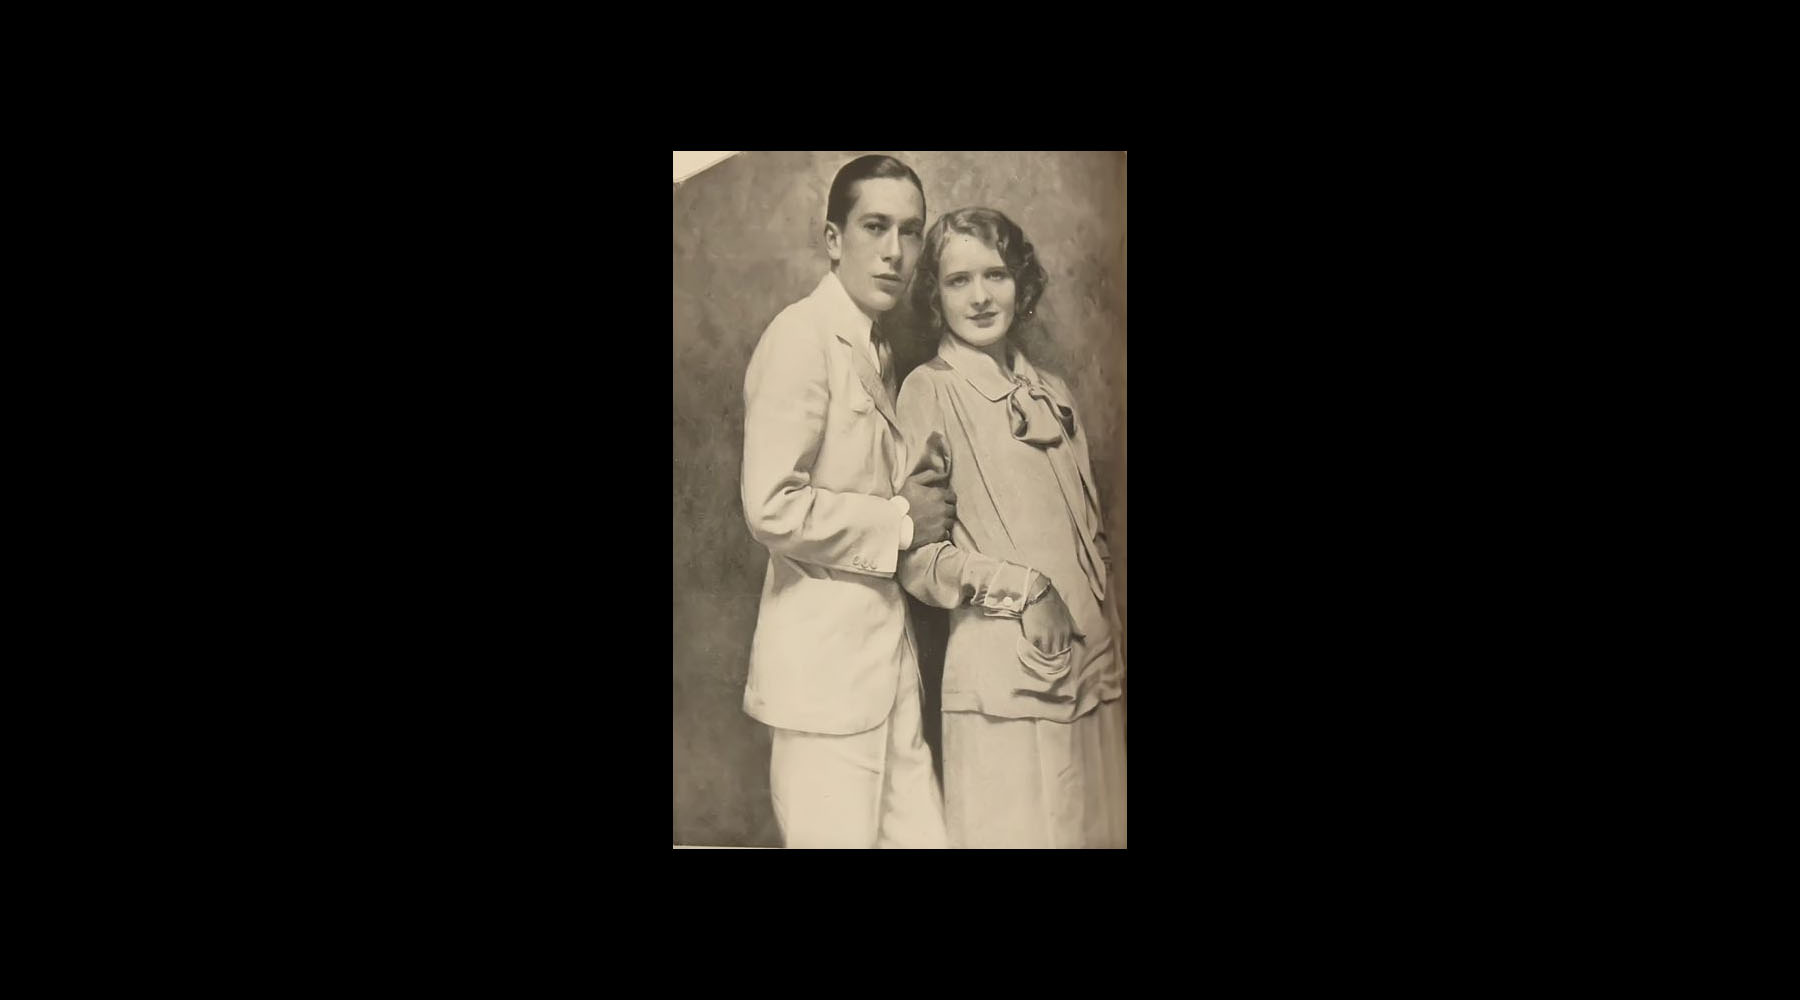 Jack seen here with Marilyn Miller, Florenz Ziegfeld's biggest star and his latest obsession. Marilyn also lost her spouse in 19